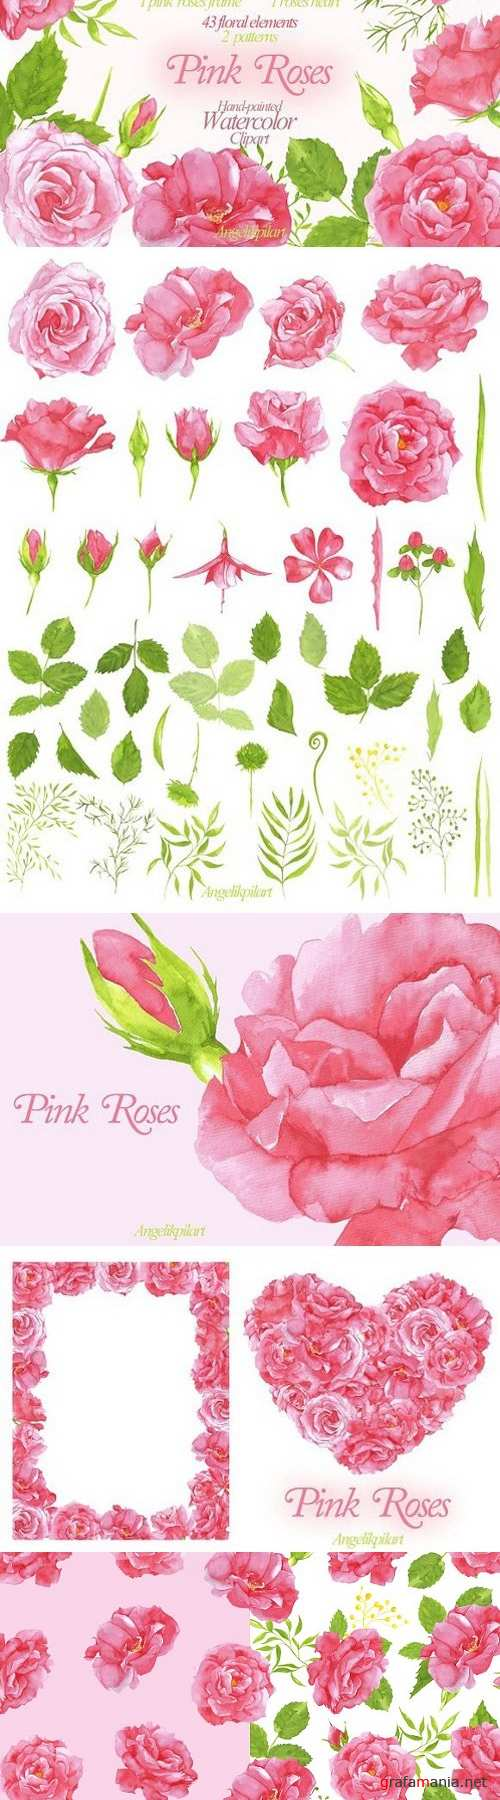 watercolor Pink Roses clipart 1522731